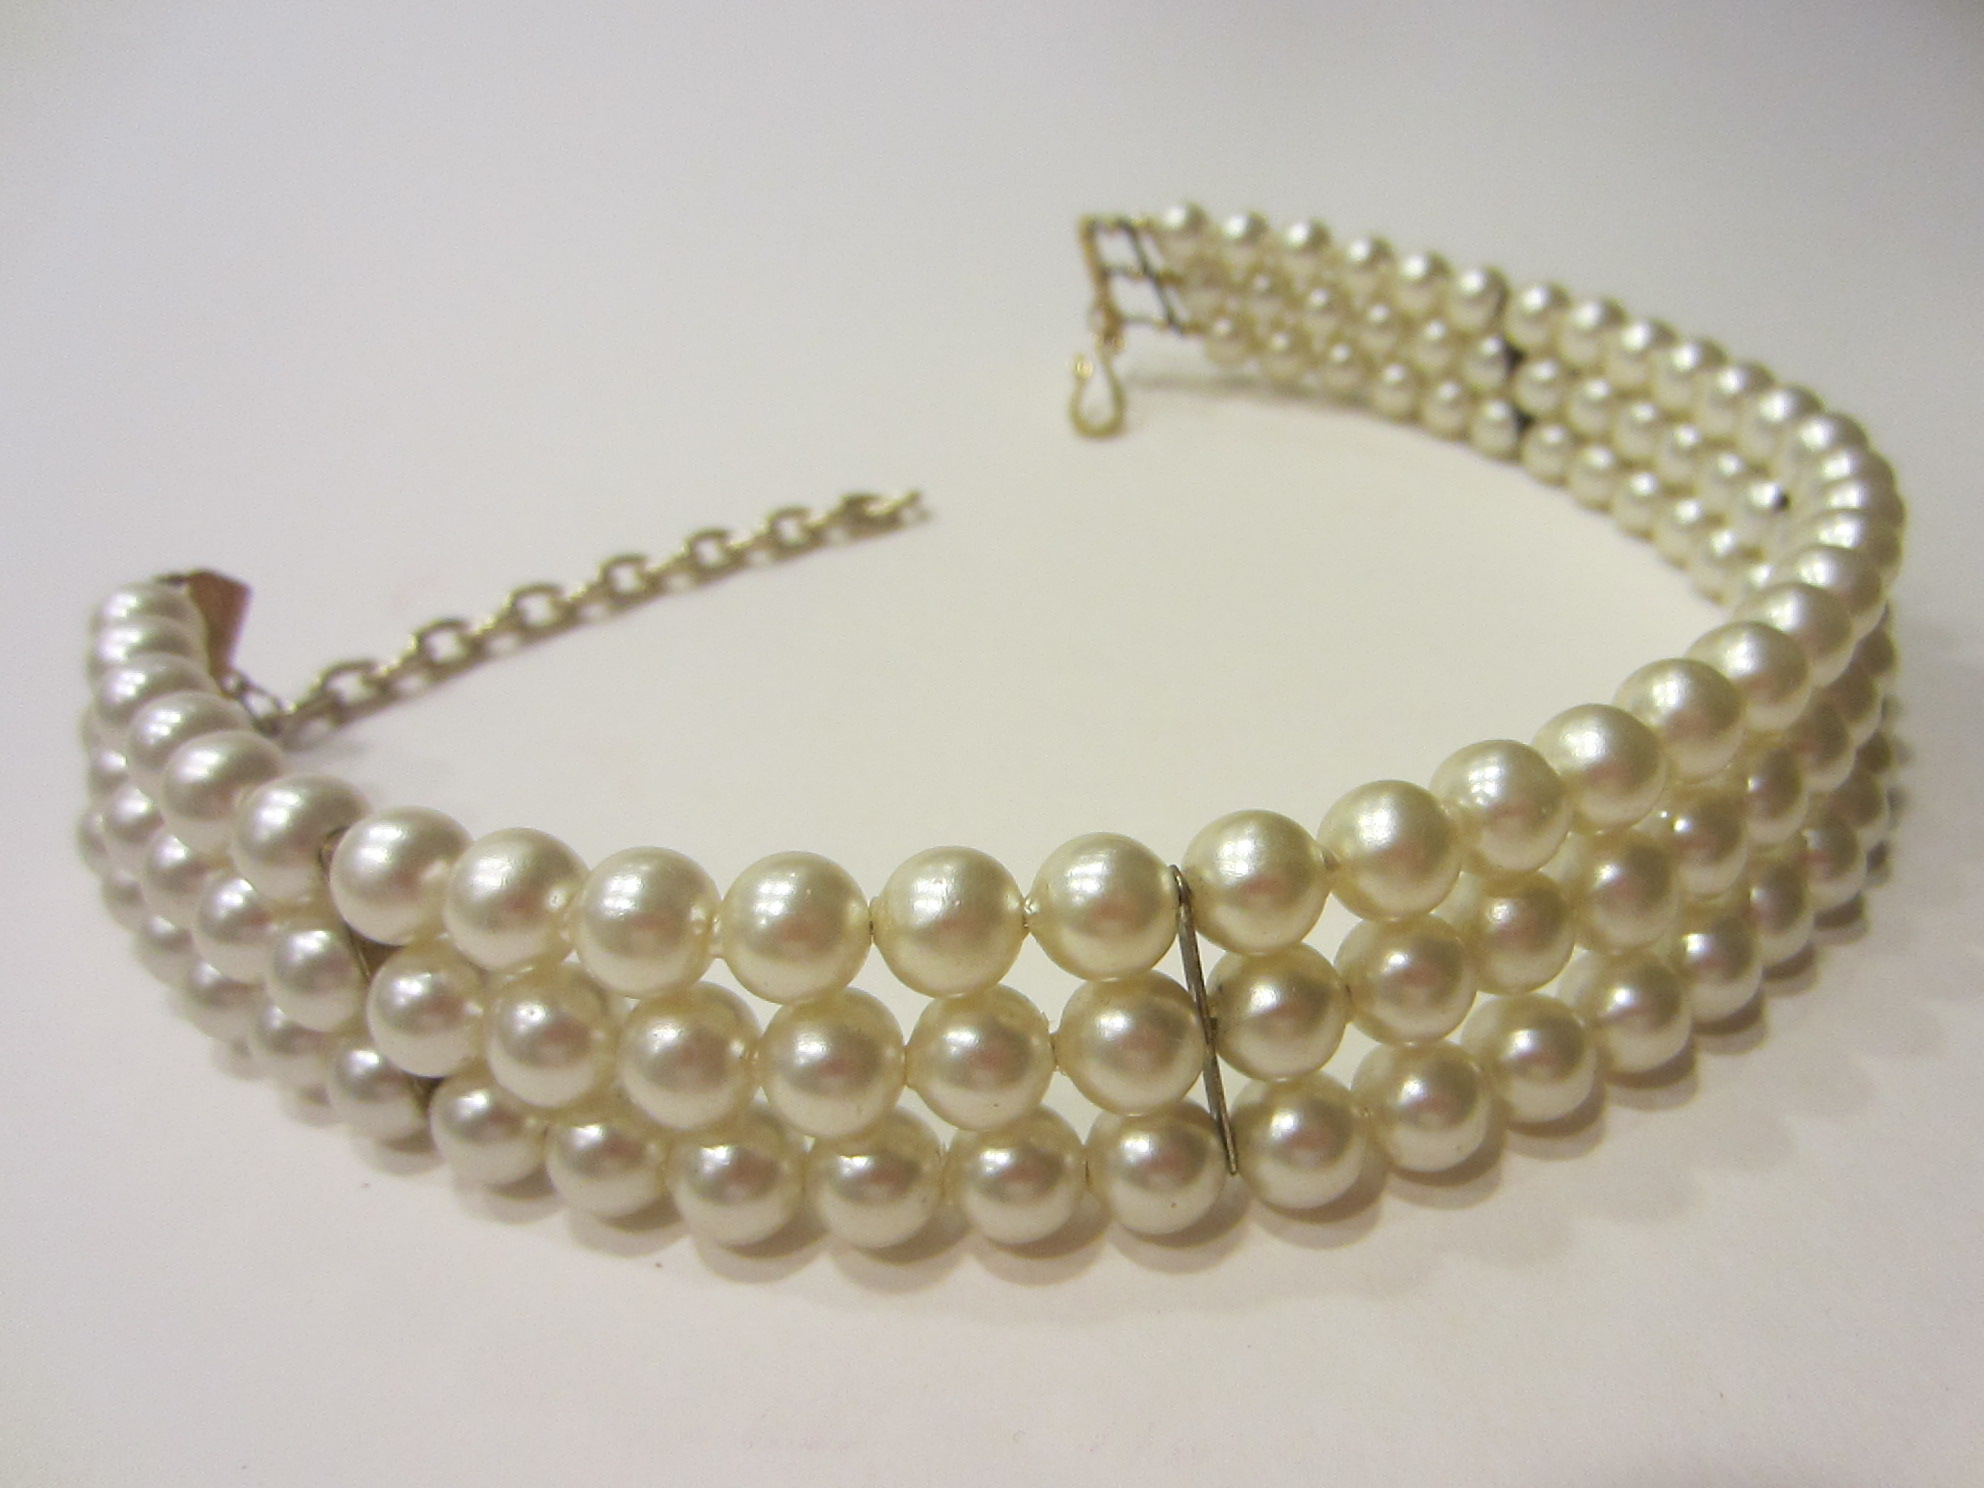 Bridal Pearl Choker Three Strands Brass Closure Link Chain For Sale ...